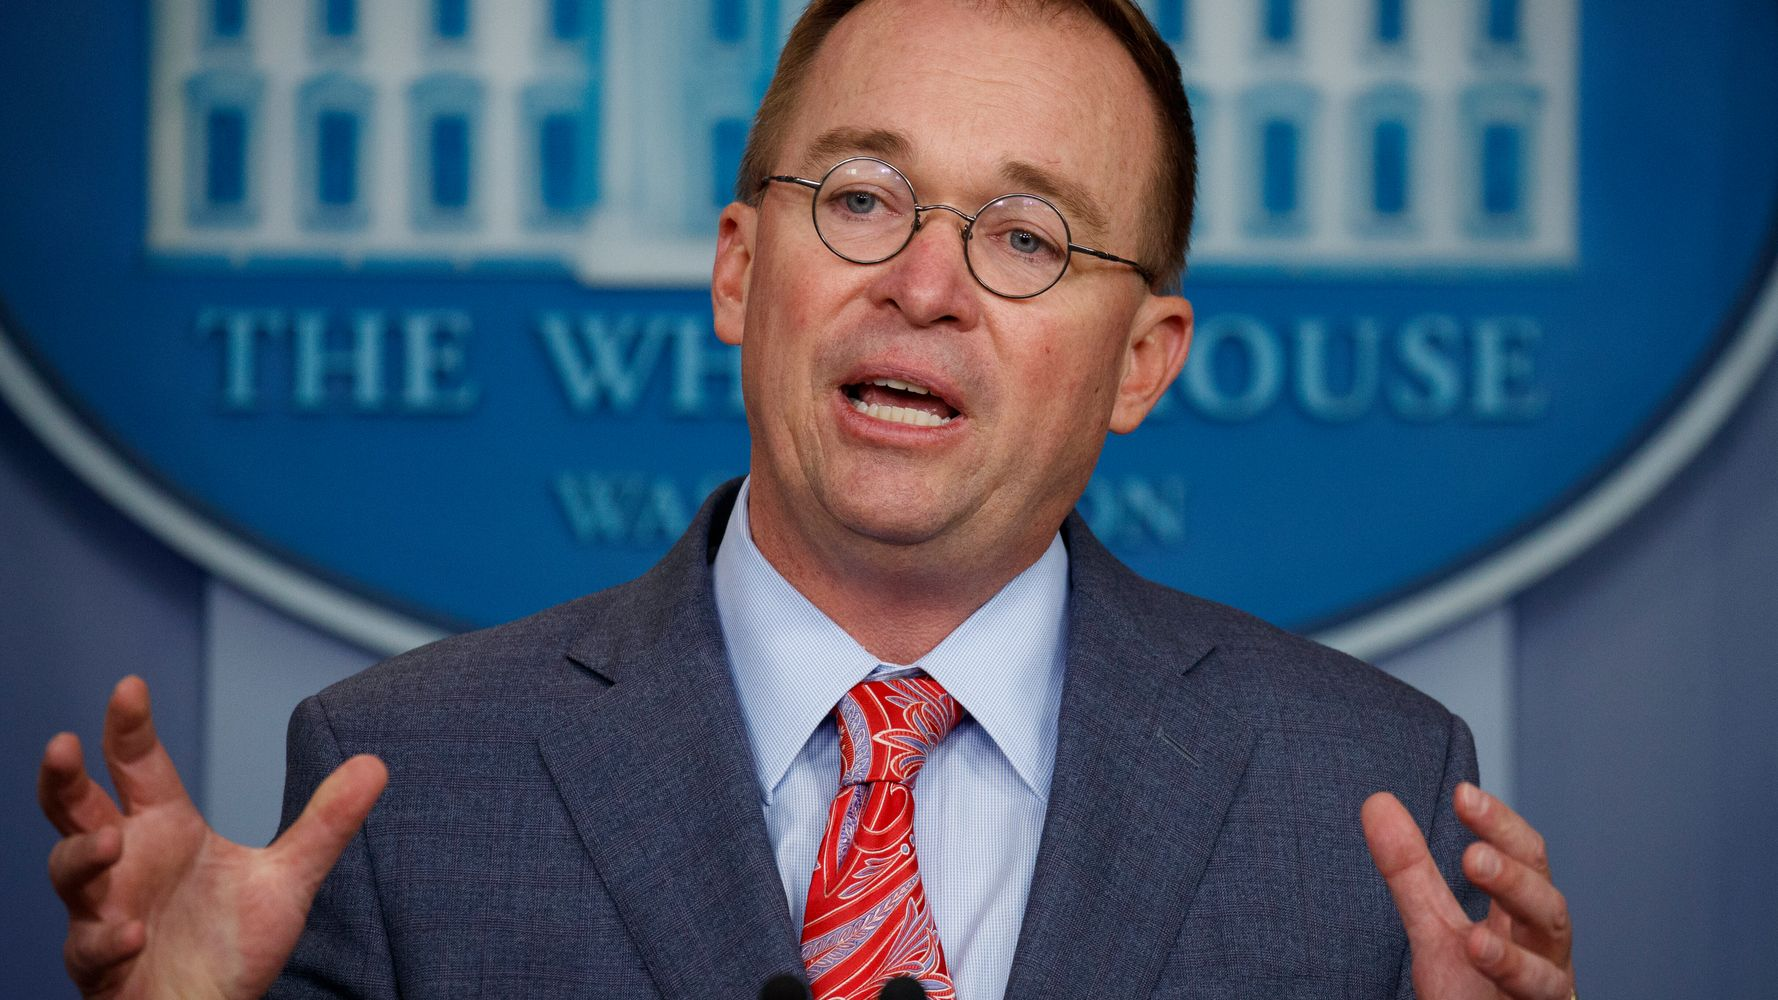 Westlake Legal Group 5daceb98200000d2195063b9 Mick Mulvaney's Missteps Draw Scrutiny From Trump Allies